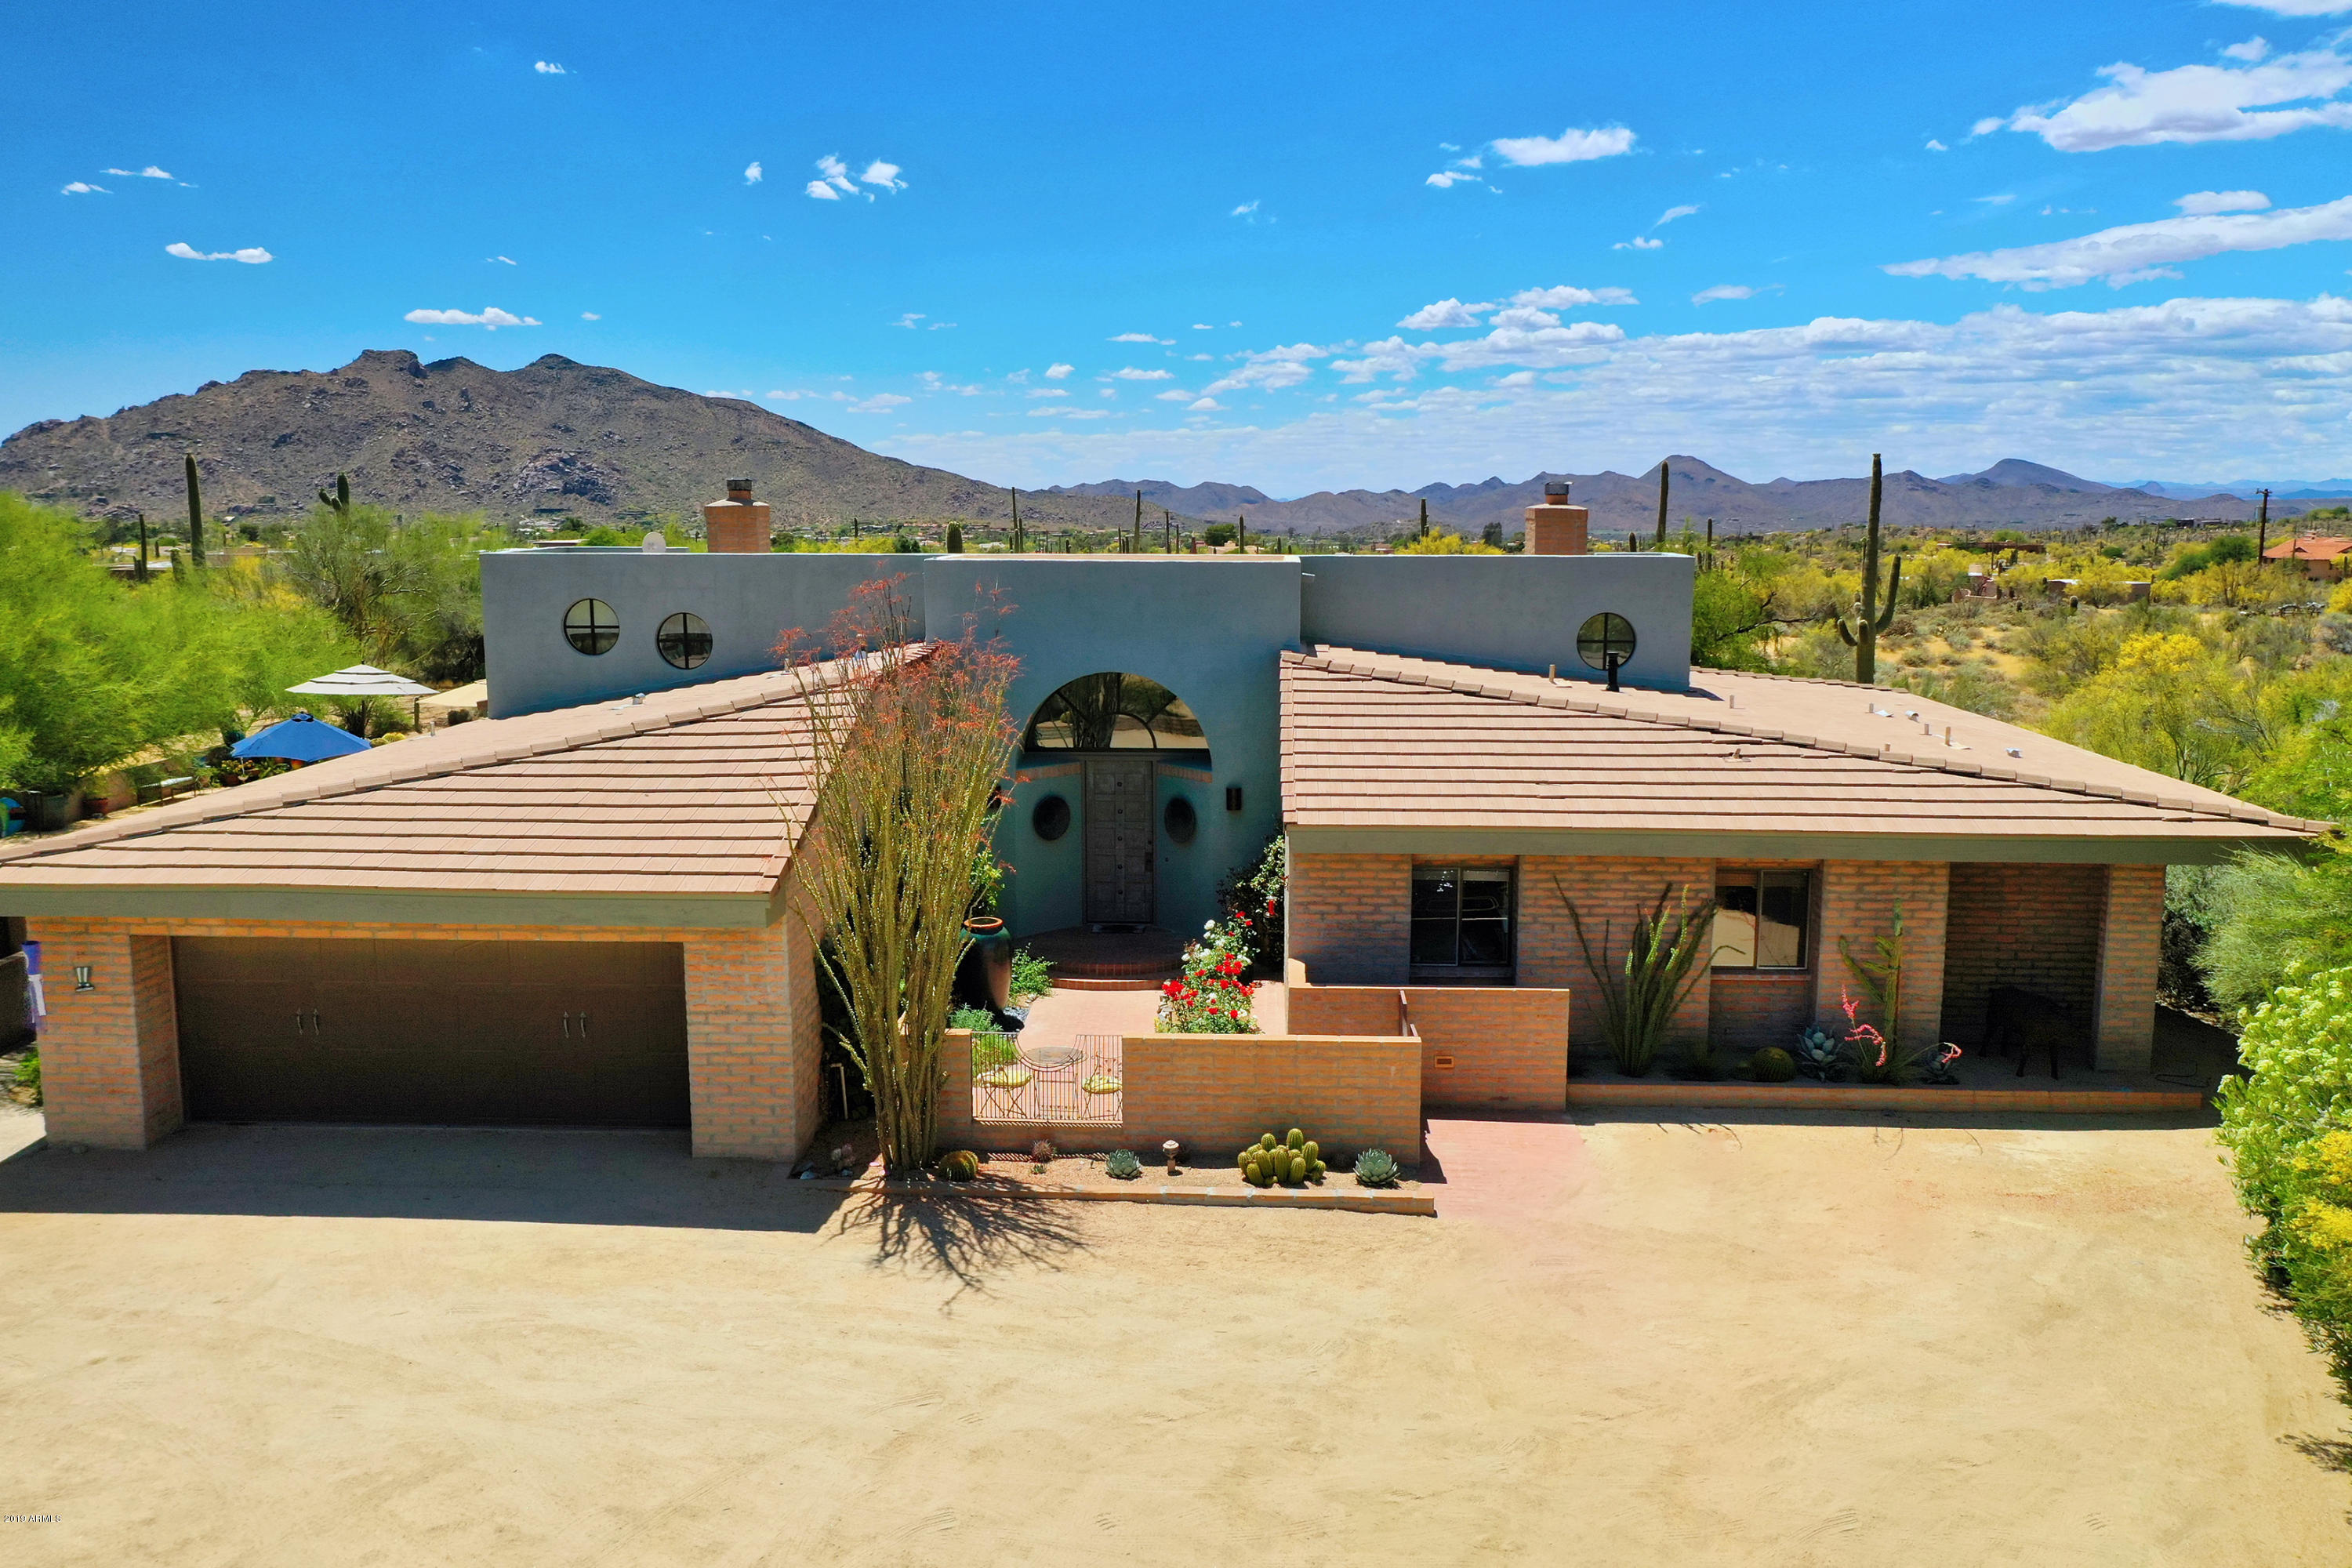 MLS 5935705 8239 E Paint Pony Drive, Carefree, AZ 85377 Carefree Homes for Rent